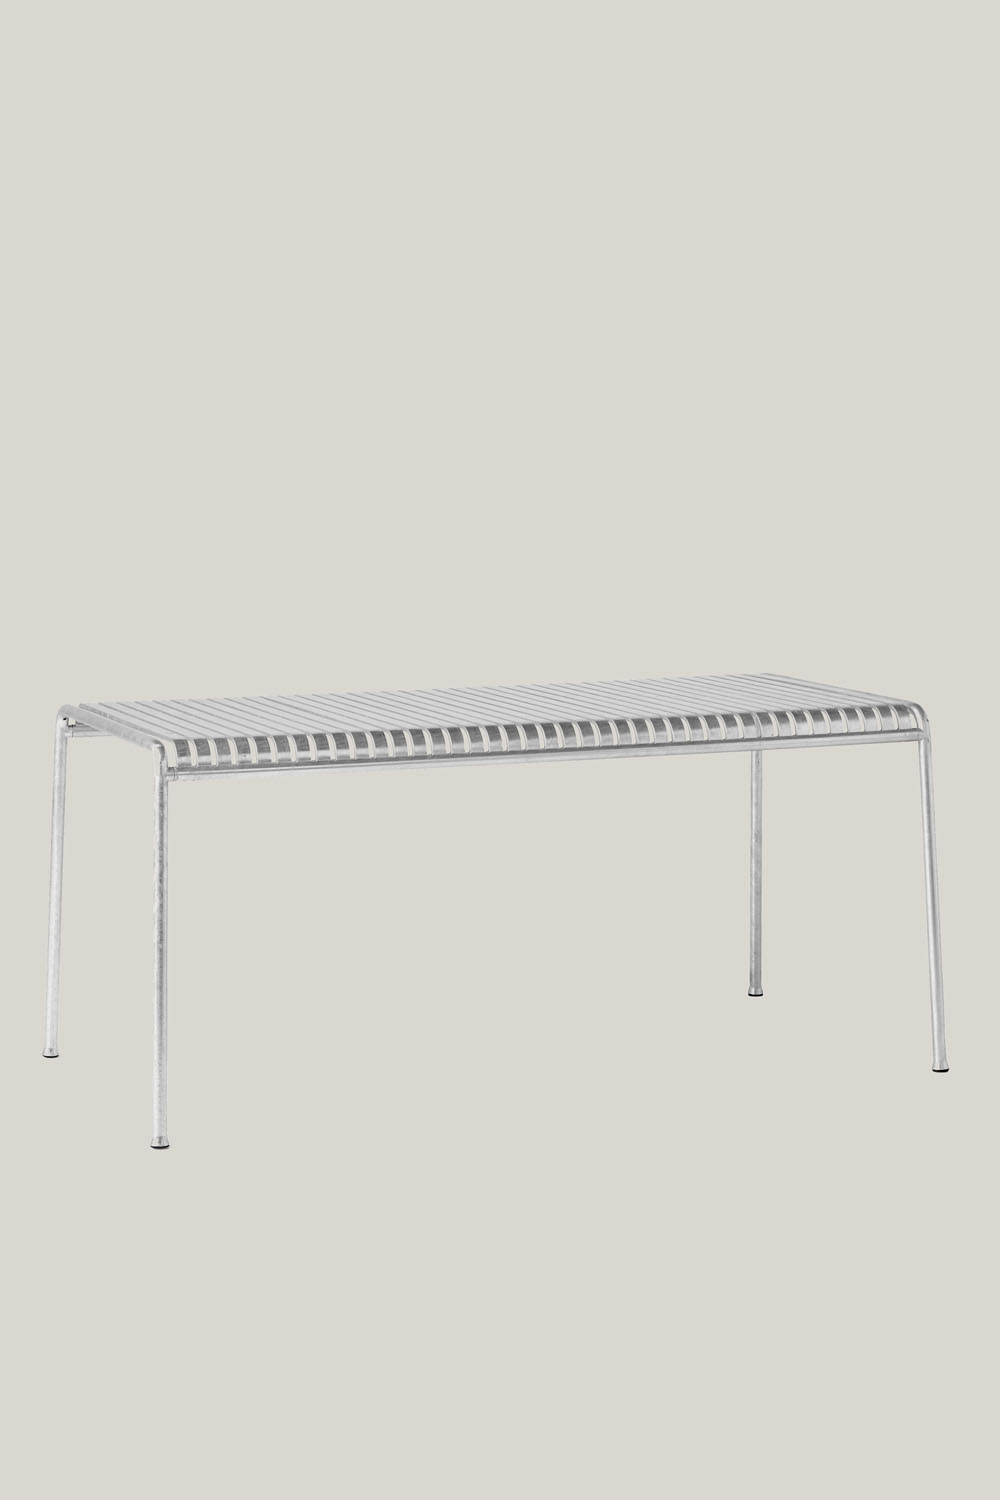 Palissade Table 160x80cm Hot Galvanised